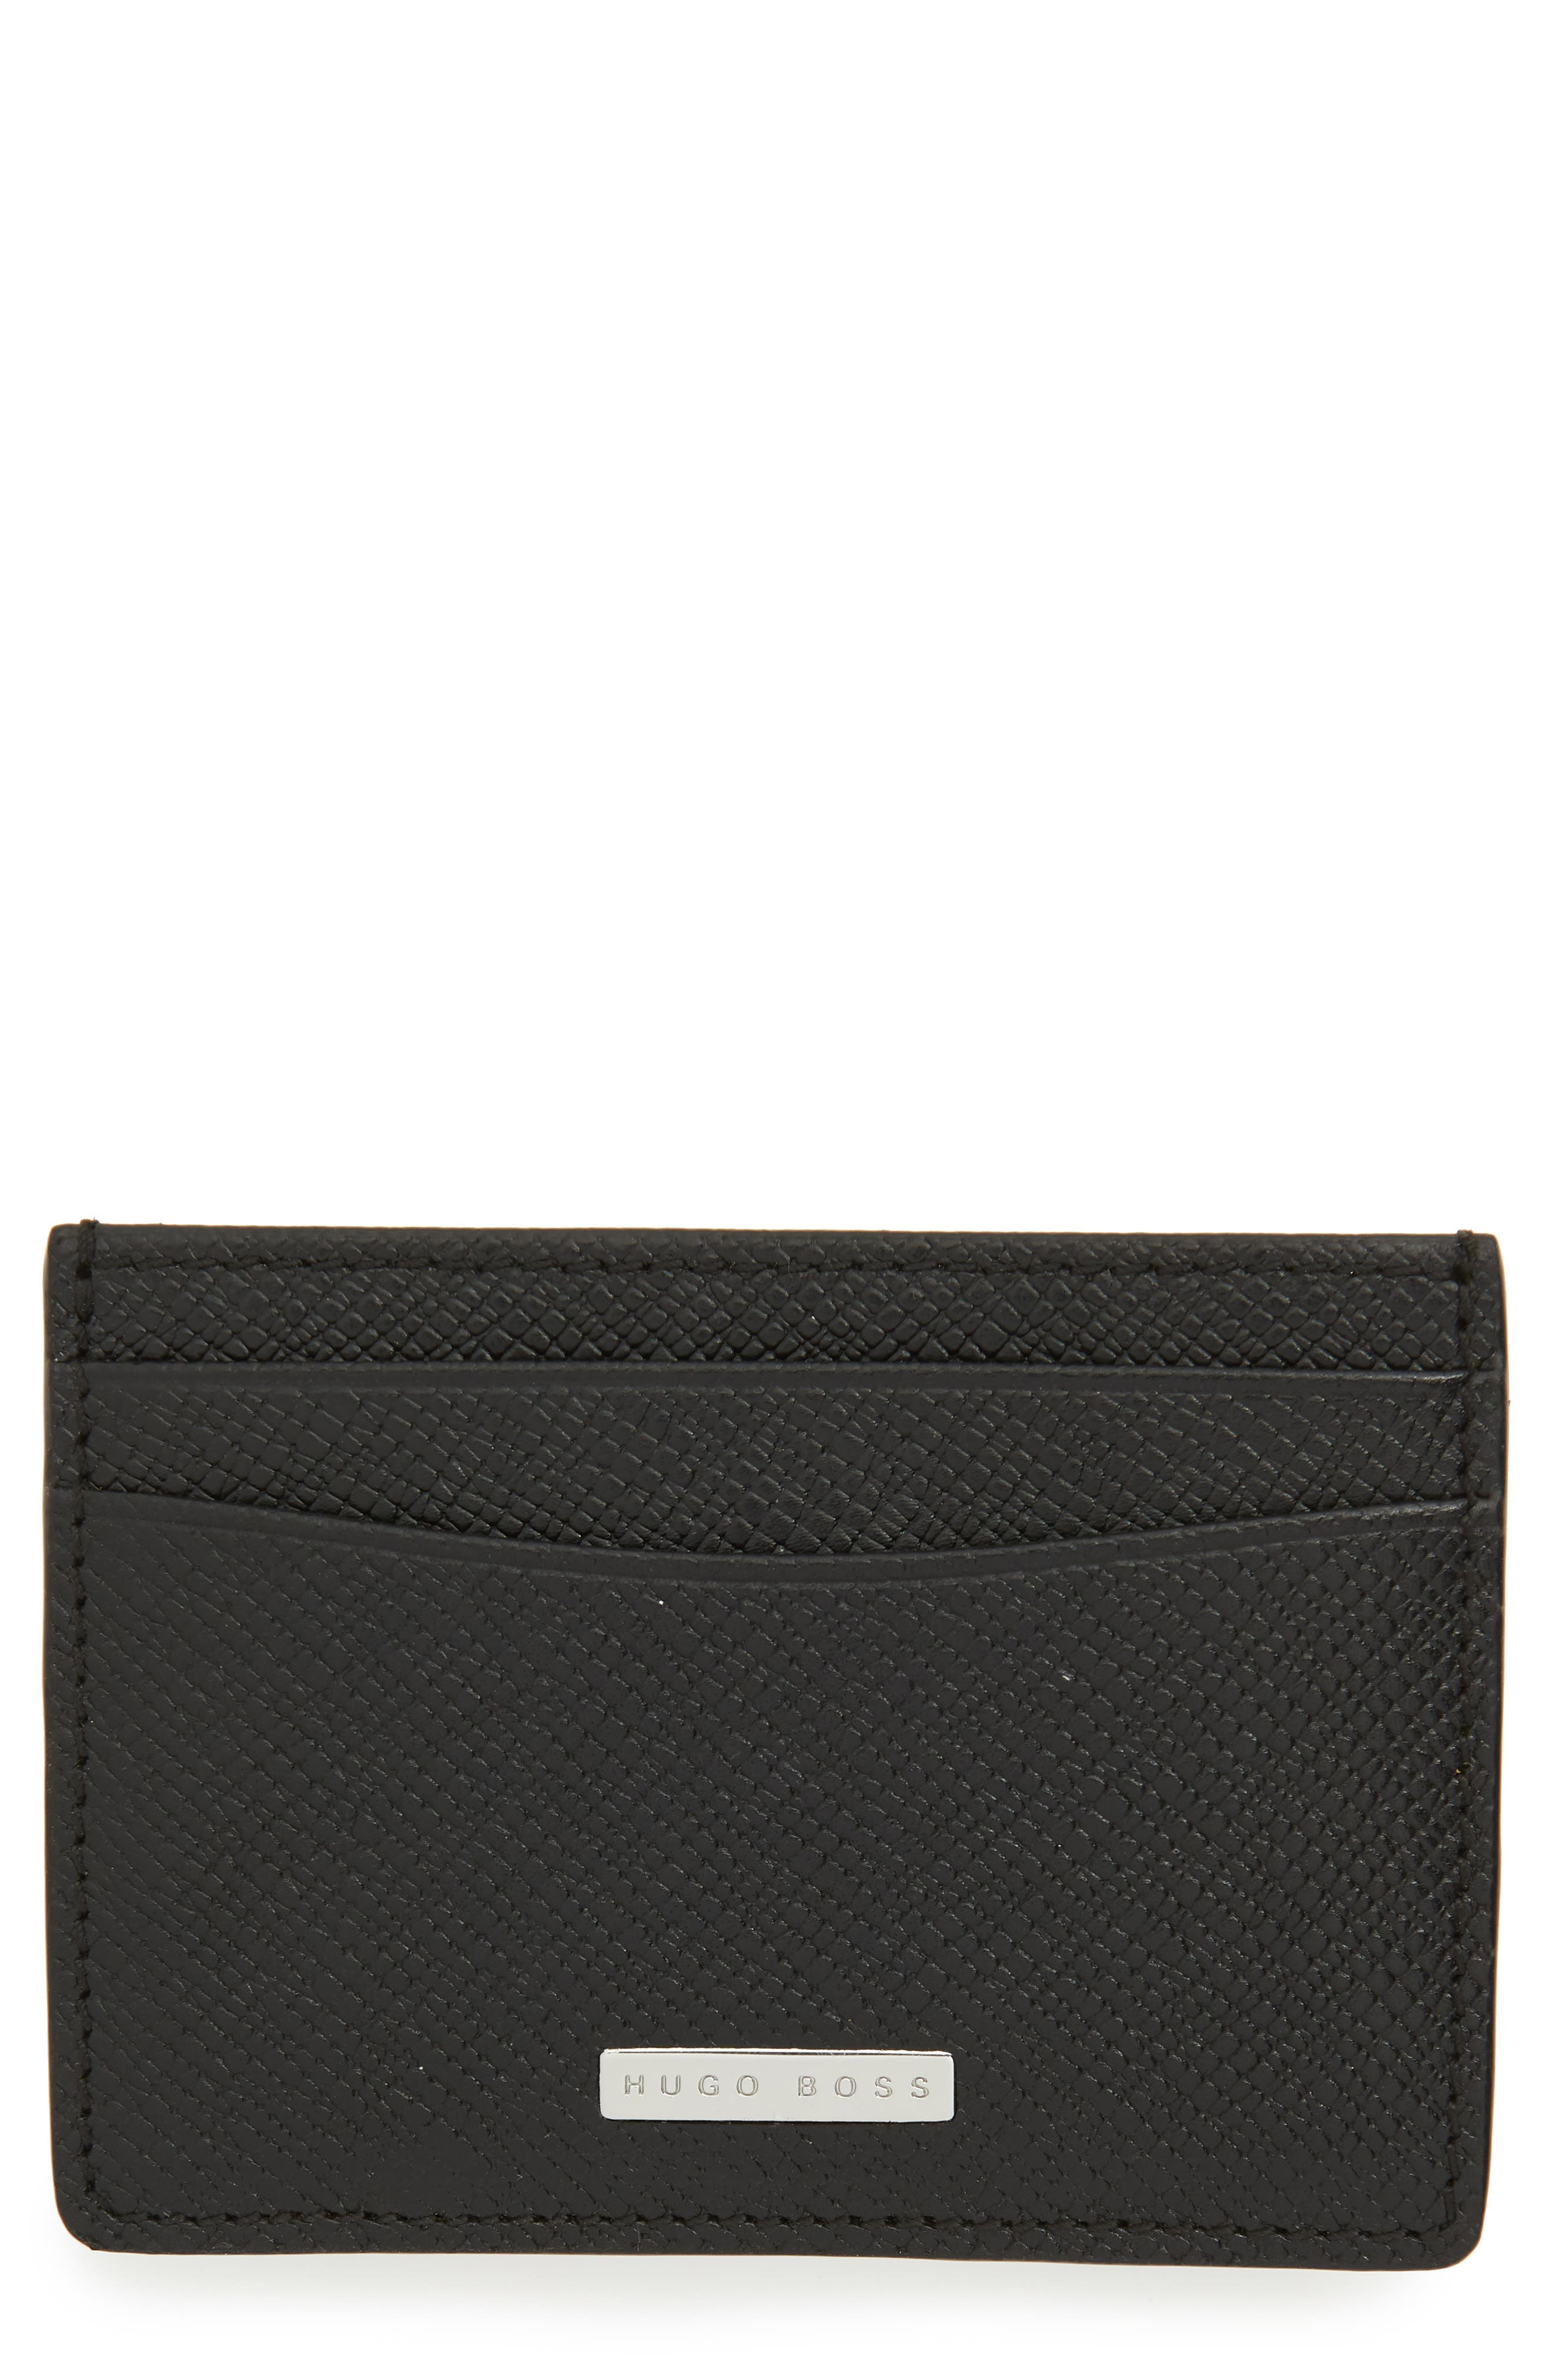 BOSS Hugo Boss Signature Leather Money Clip